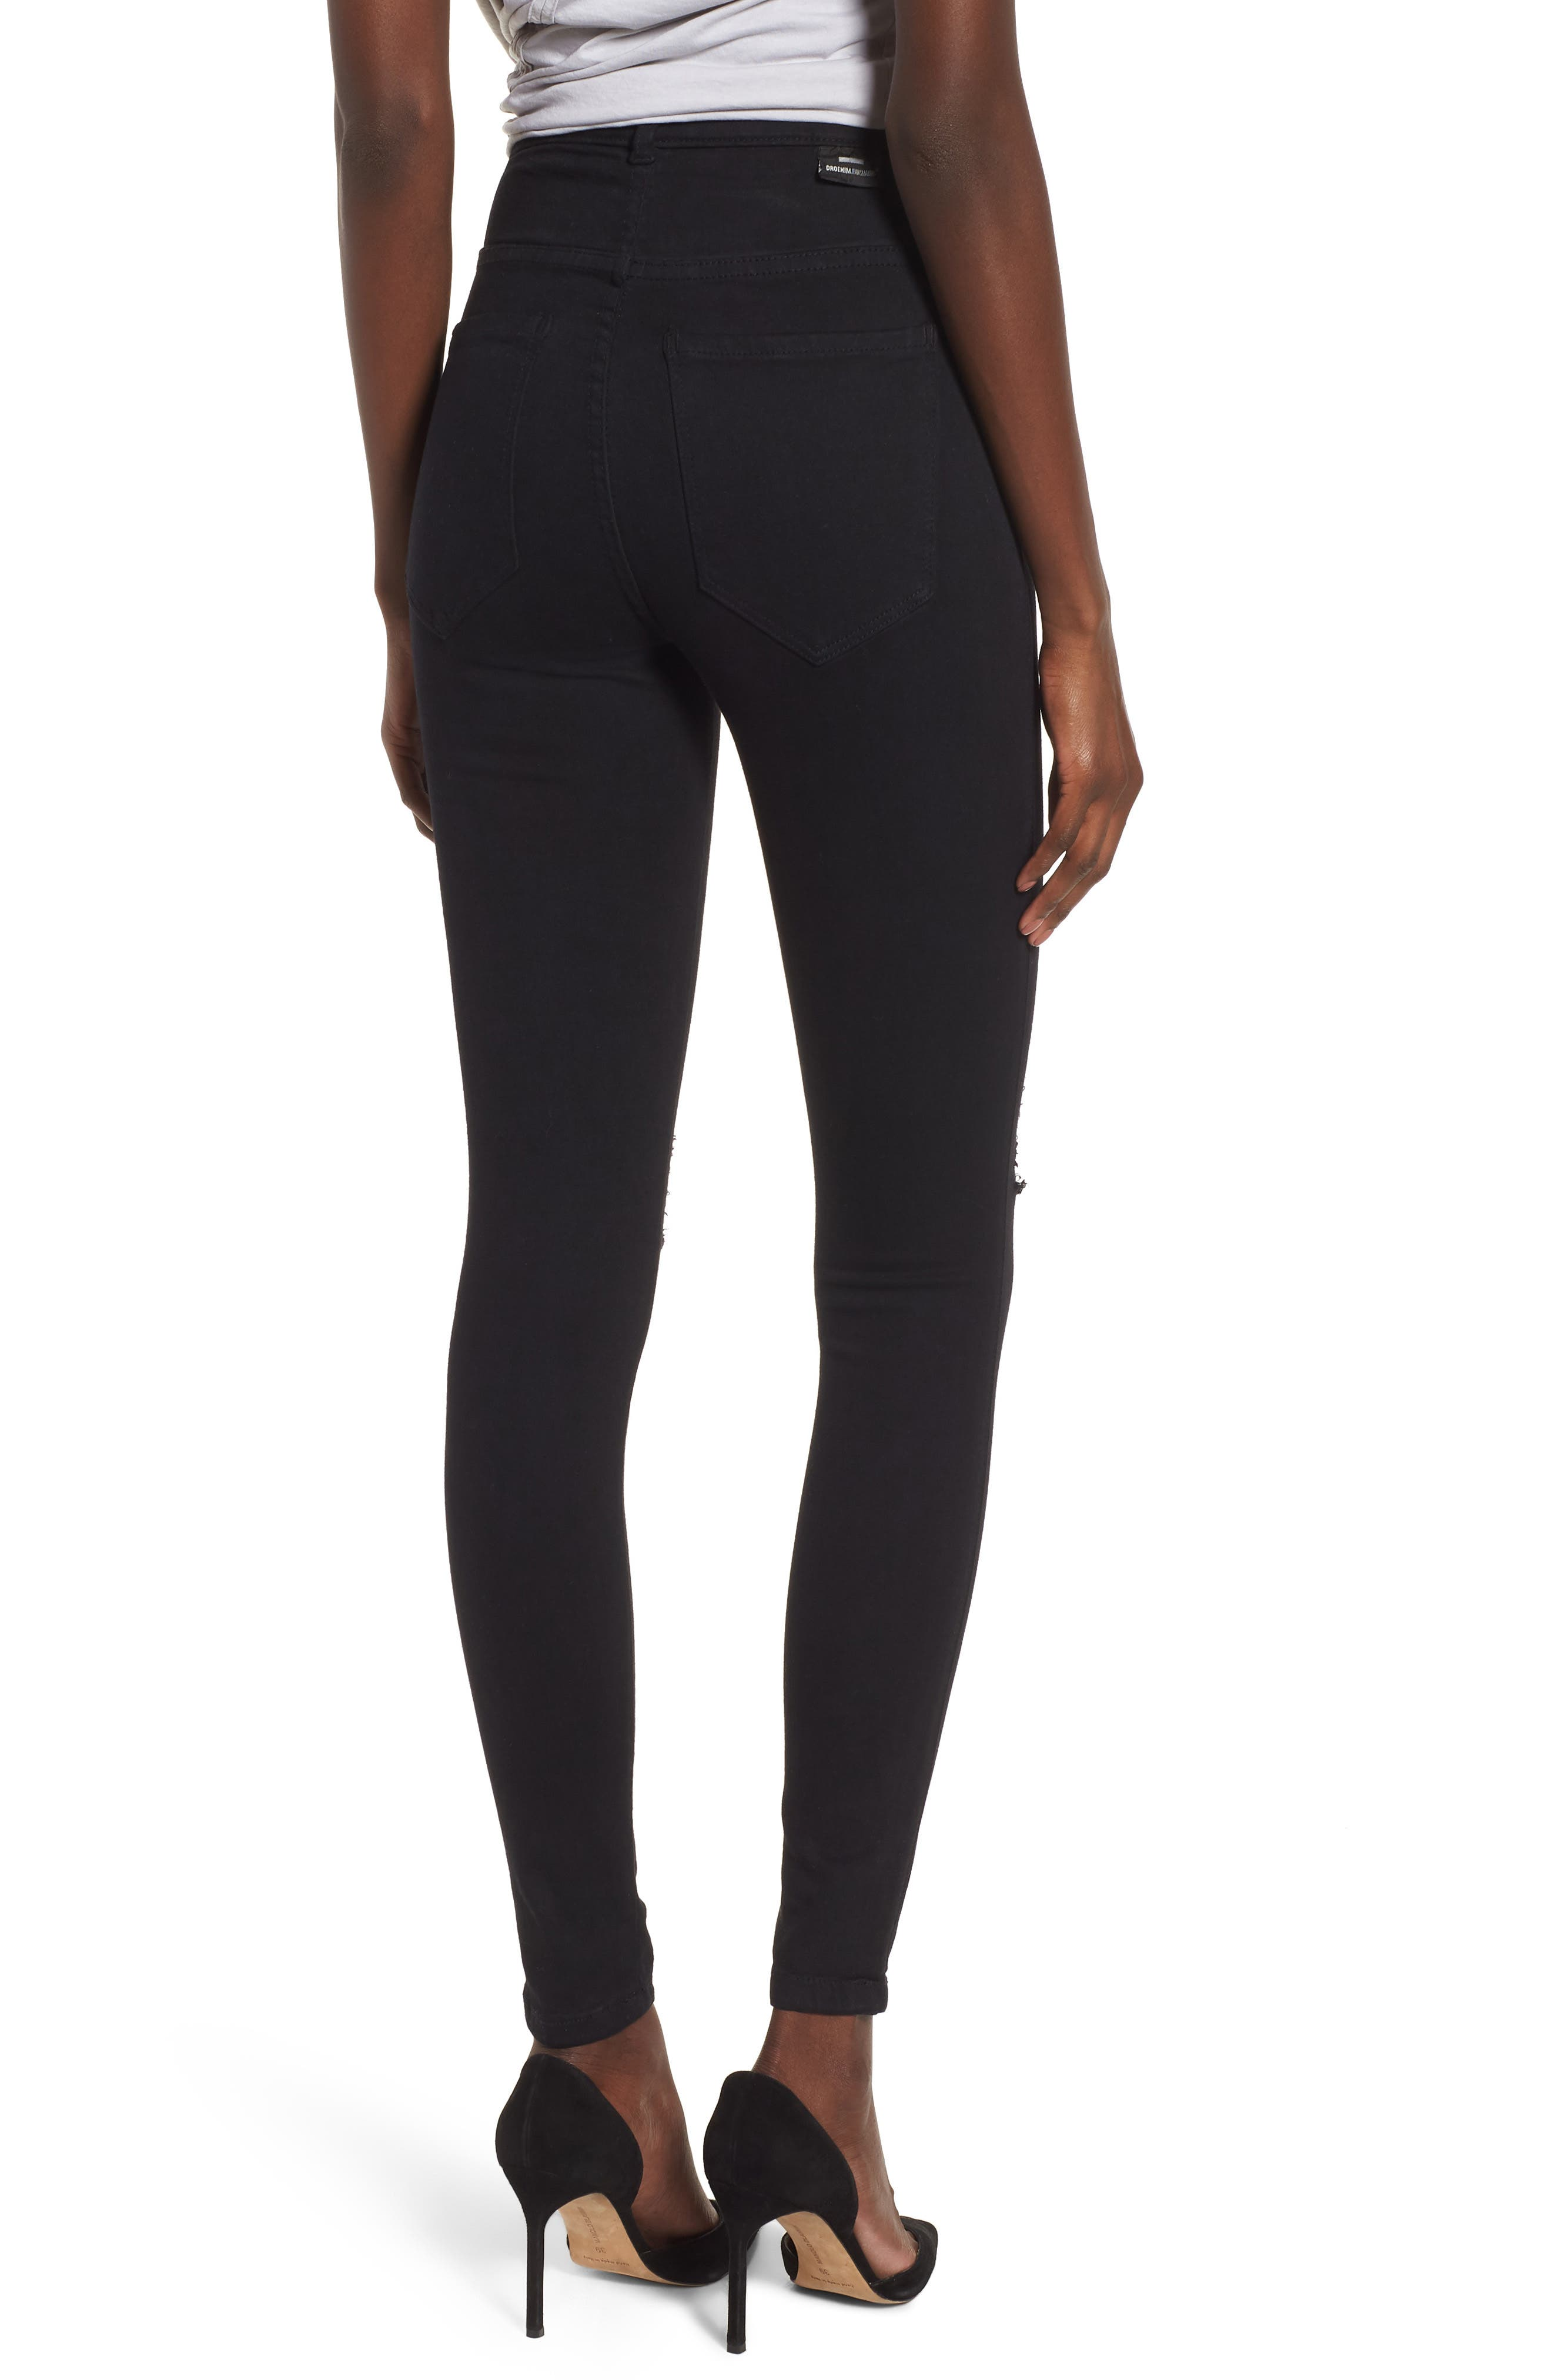 Moxy Ripped Knee Skinny Jeans,                             Alternate thumbnail 2, color,                             Black